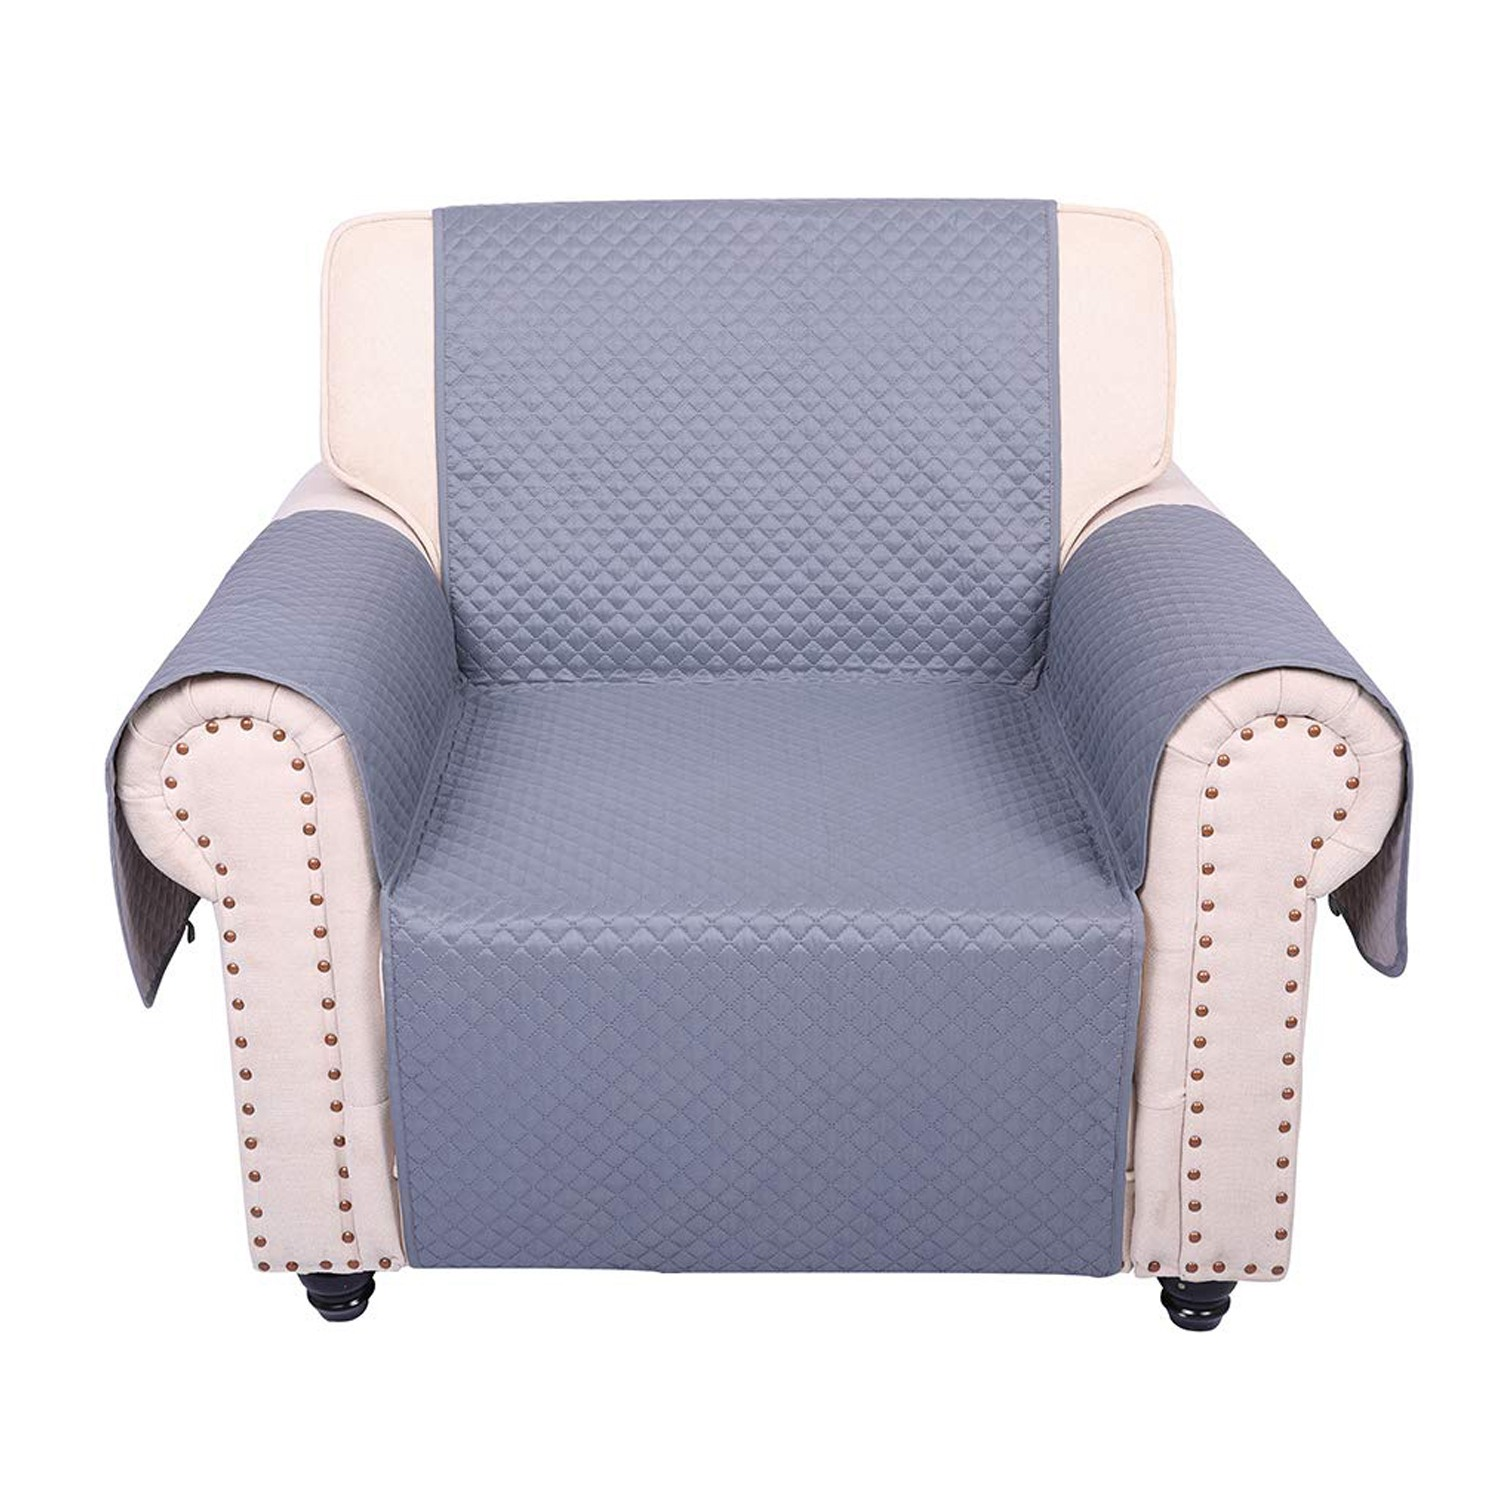 machine Cat Beds & Mats Pet Products Latest Collection Of Chair Cover For Dogs Pet And Kid,reversible Armchair Cover/stain Resistant Chair Slipcover/ Anti-slip Chair Protector